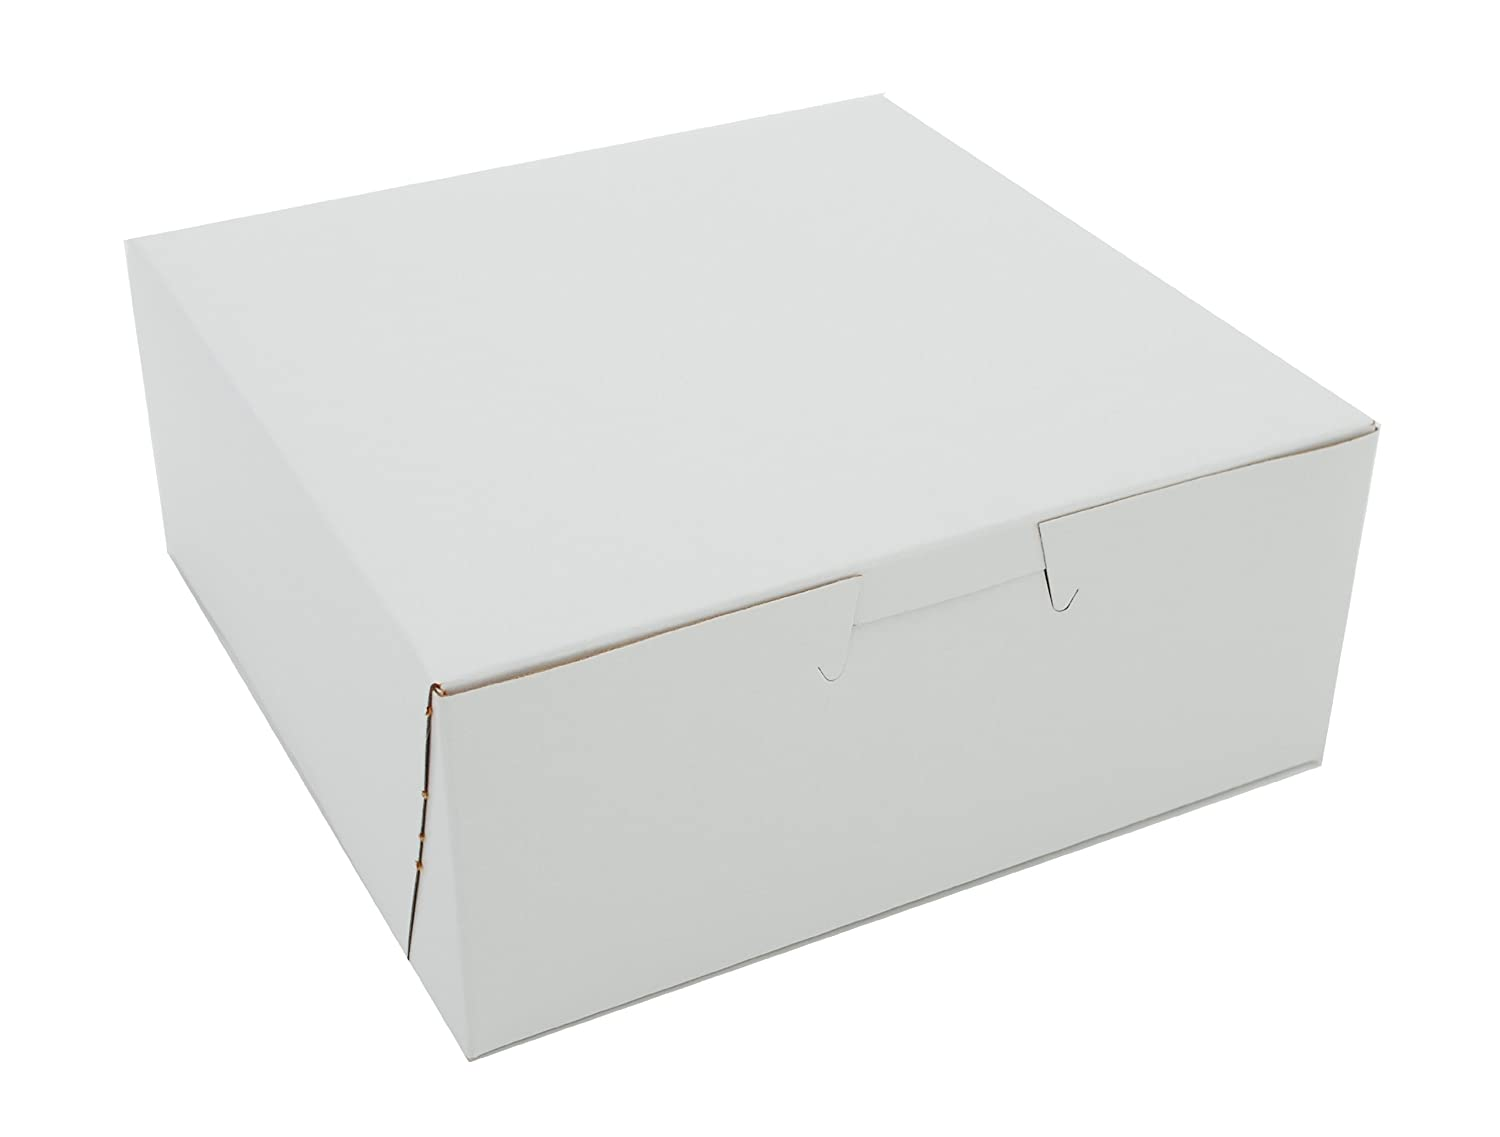 Southern Champion Tray 0901 Premium Clay Coated Kraft Paperboard White Non-Window Lock Corner Bakery Box, 6' Length x 6' Width x 2-1/2' Height (Case of 250) 6 Length x 6 Width x 2-1/2 Height (Case of 250) LP